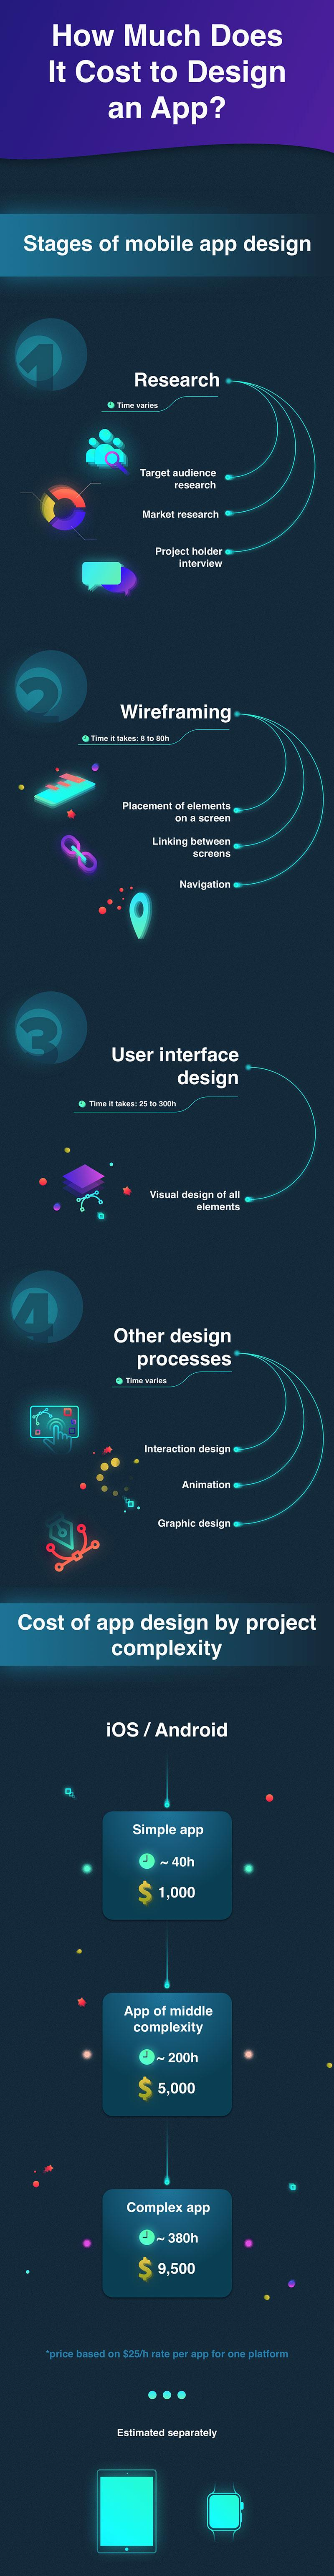 how-much-does-it-cost-to-design-an-app-infographic